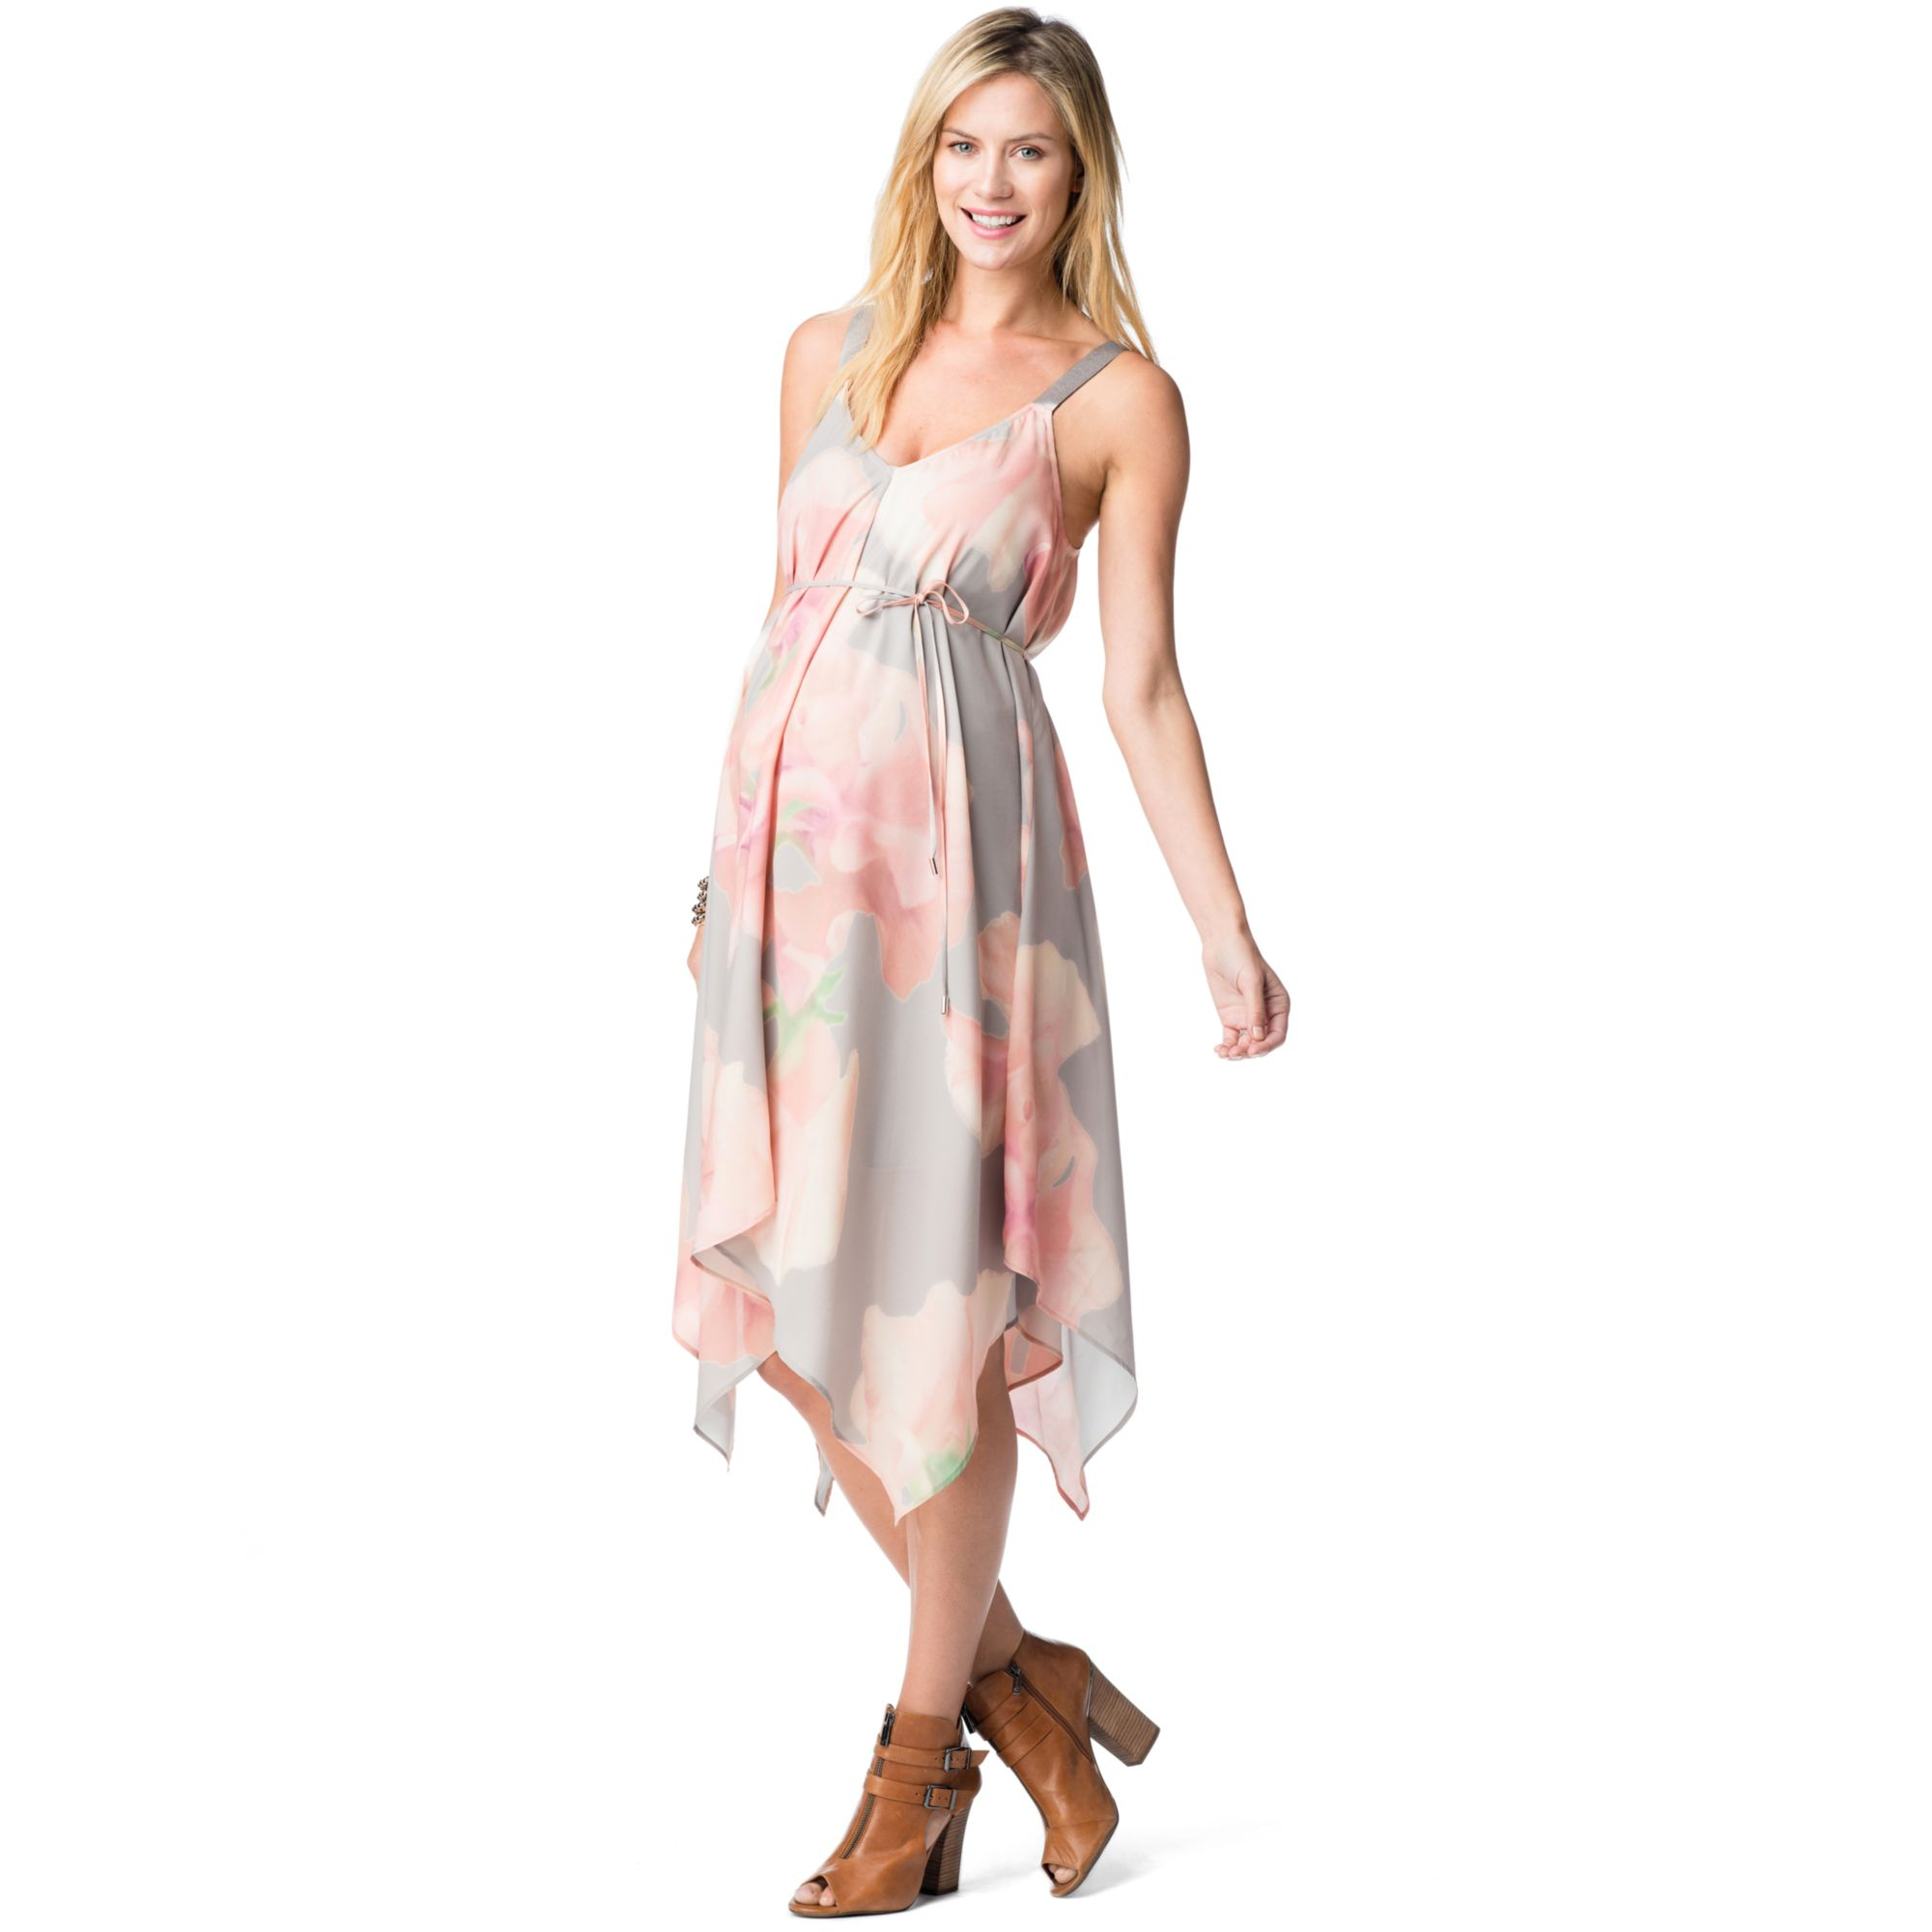 37640fe0798 Jessica Simpson Maternity Floralprint Handkerchiefhem Dress in Pink ...